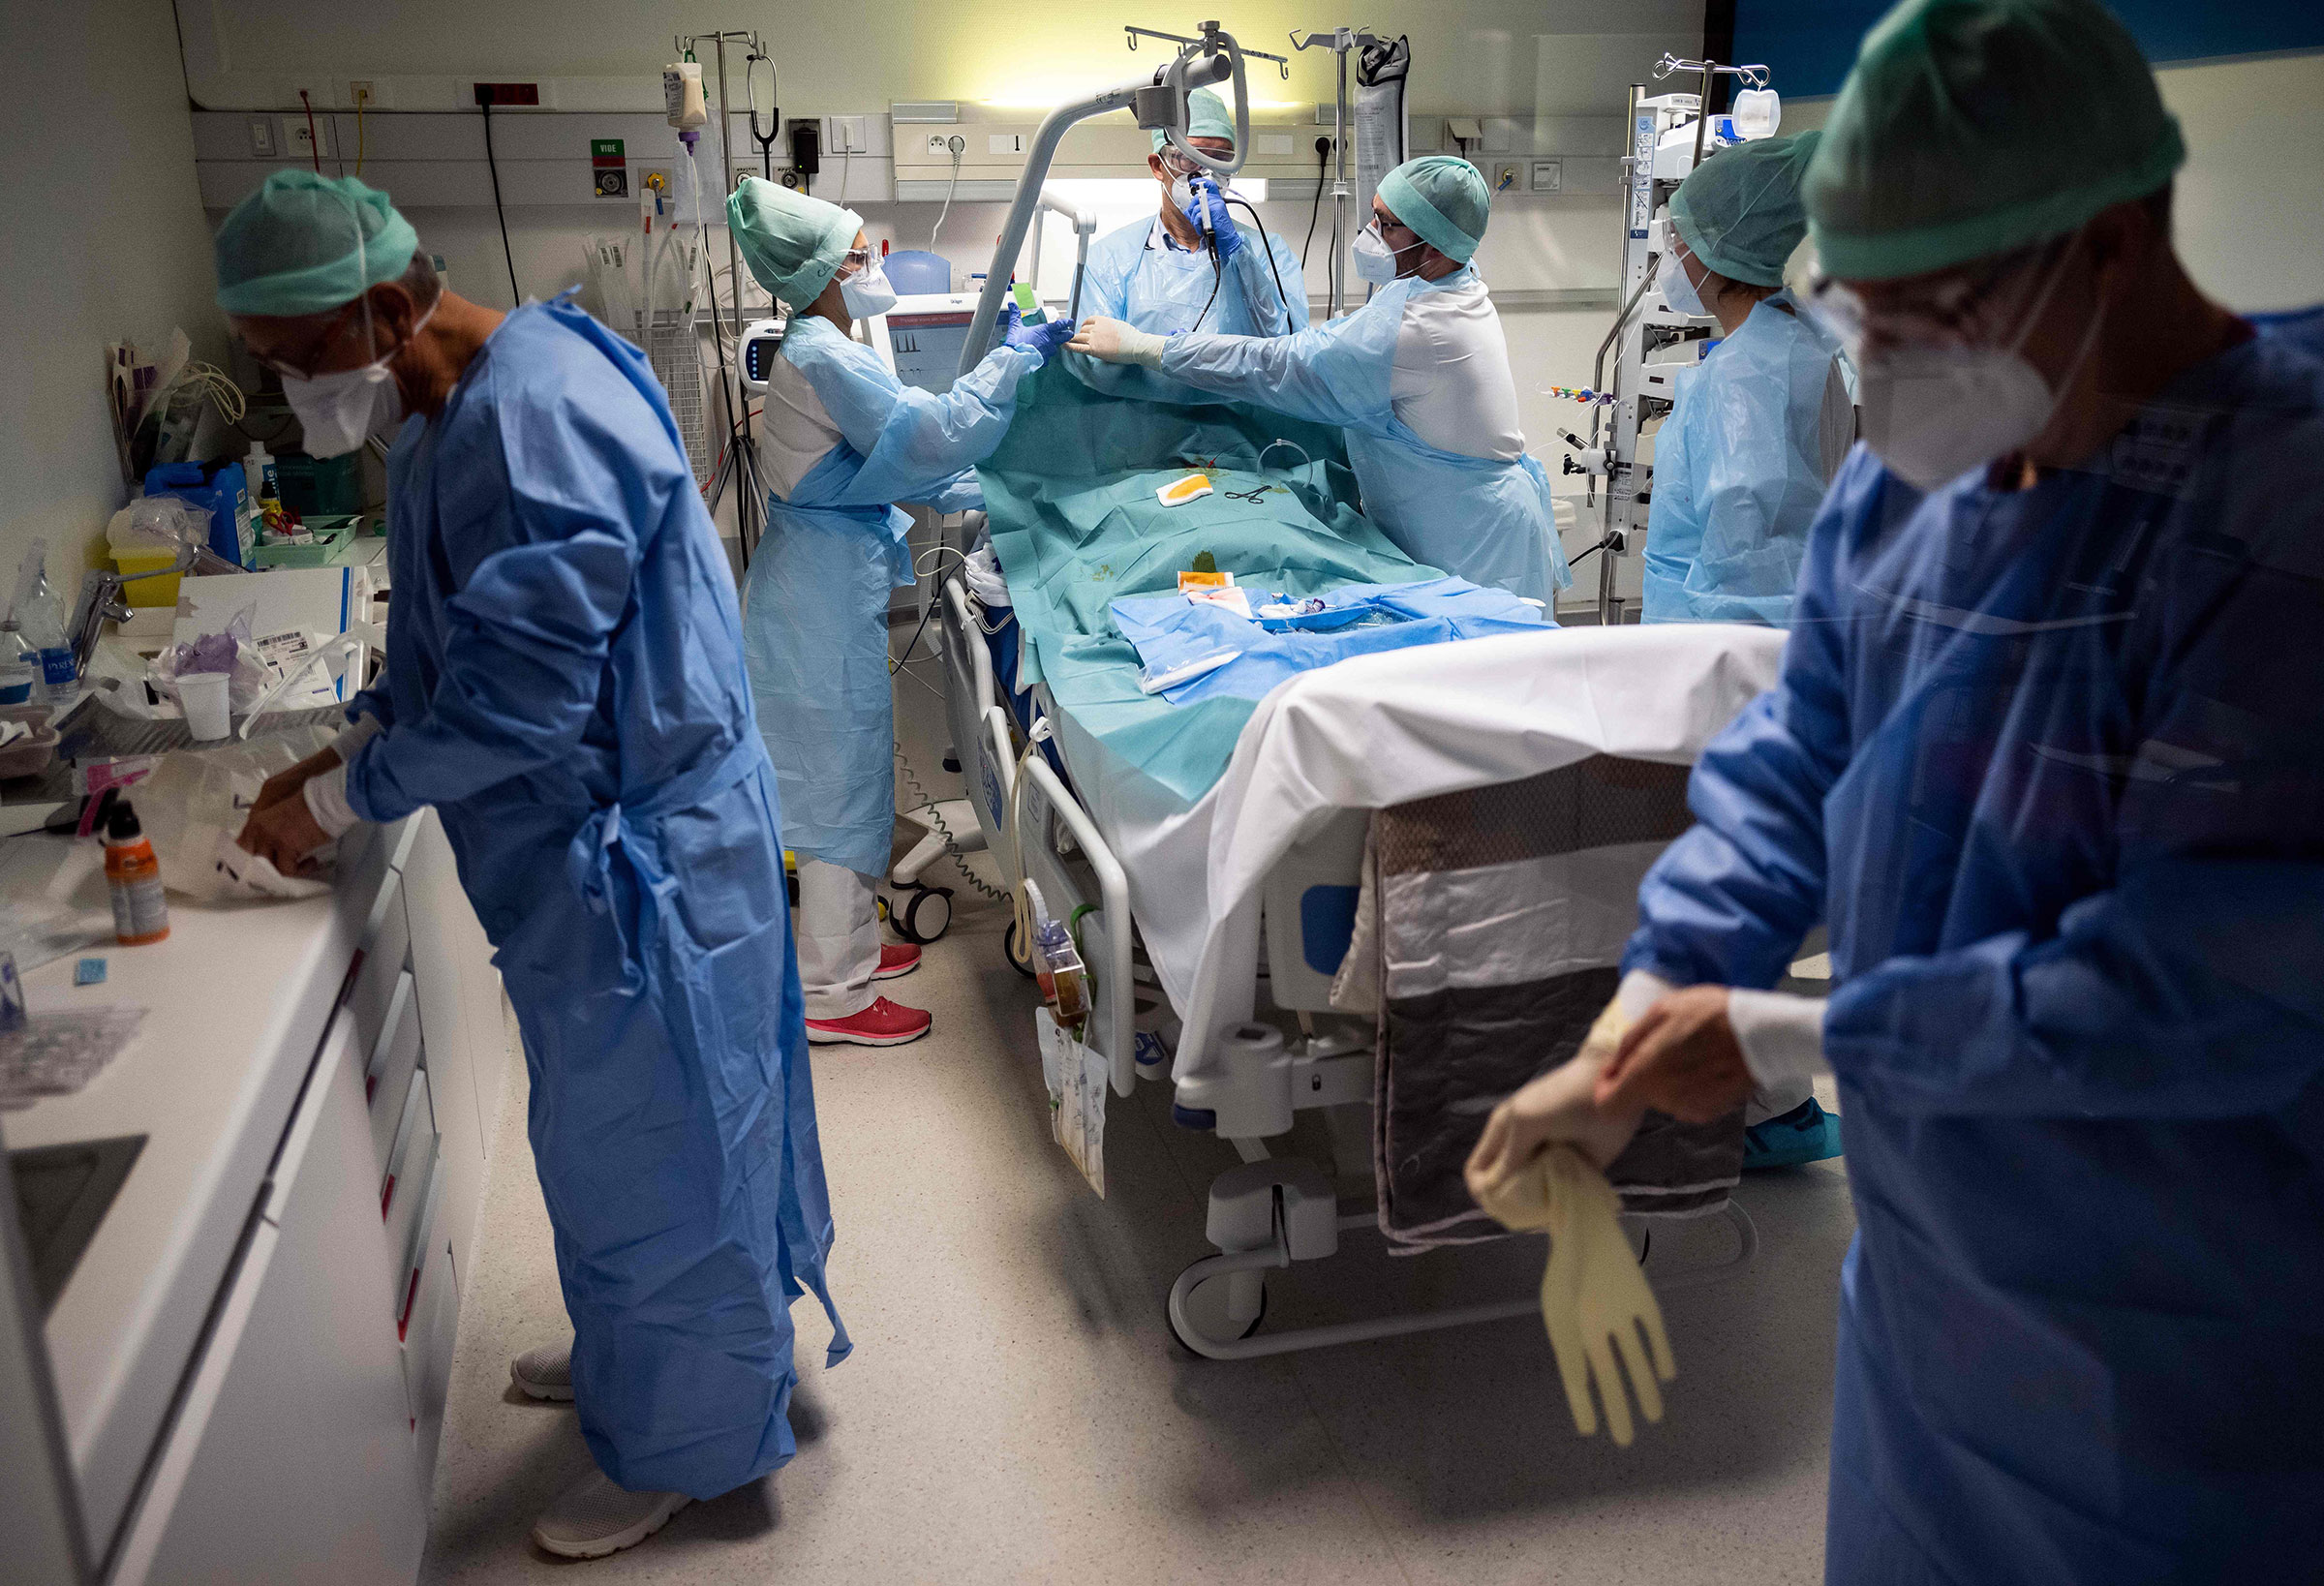 Medical personnel attend to a Covid-19 patient at an intensive care unit in Muret, France, on November 17.